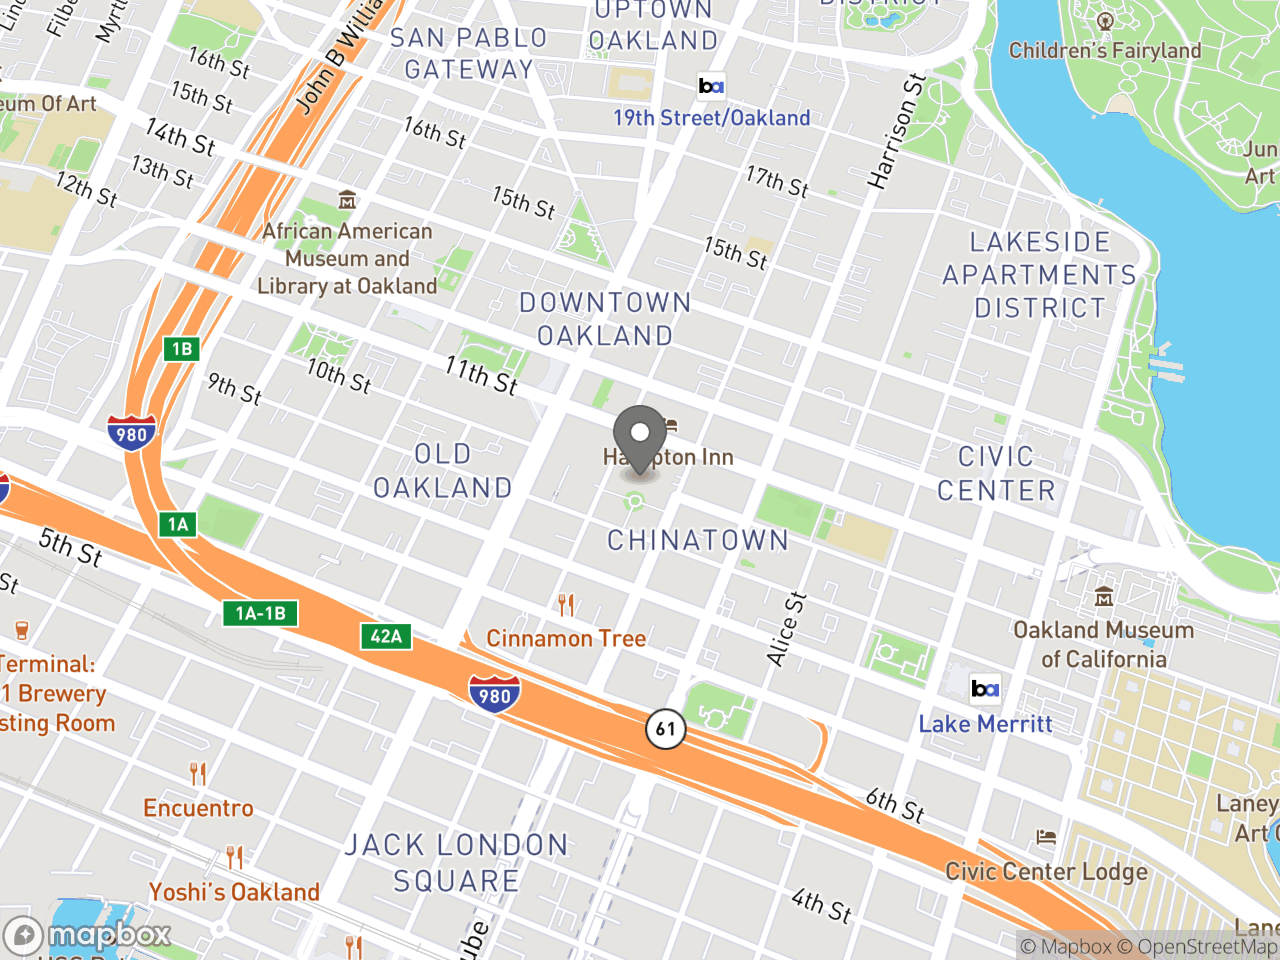 Map image for September 10, 2019 Chinatown Chamber Meeting - Downtown Oakland Specific Plan, located at 388 9th St in Oakland, CA 94607